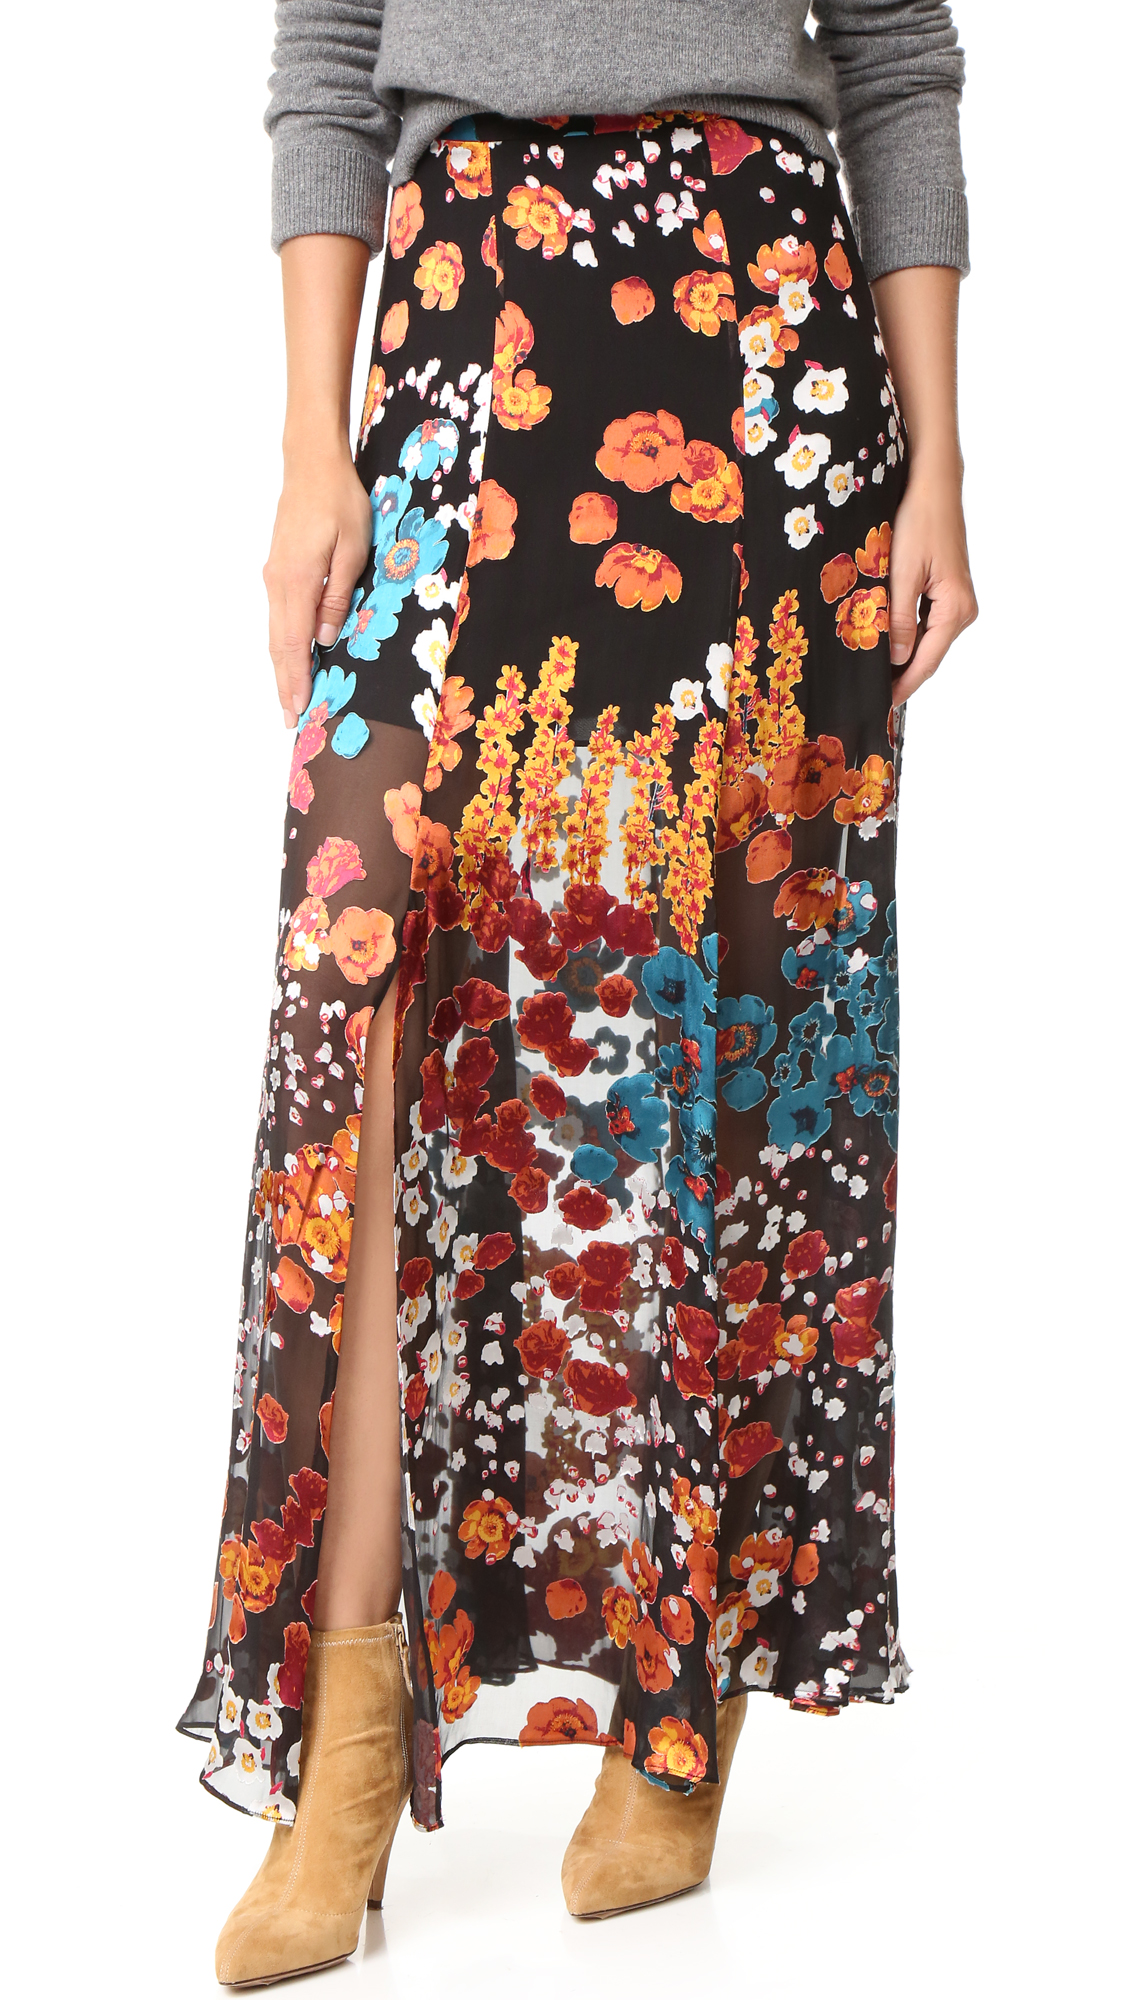 3bf52fd49e Floral Maxi Skirt Shopstyle – DACC